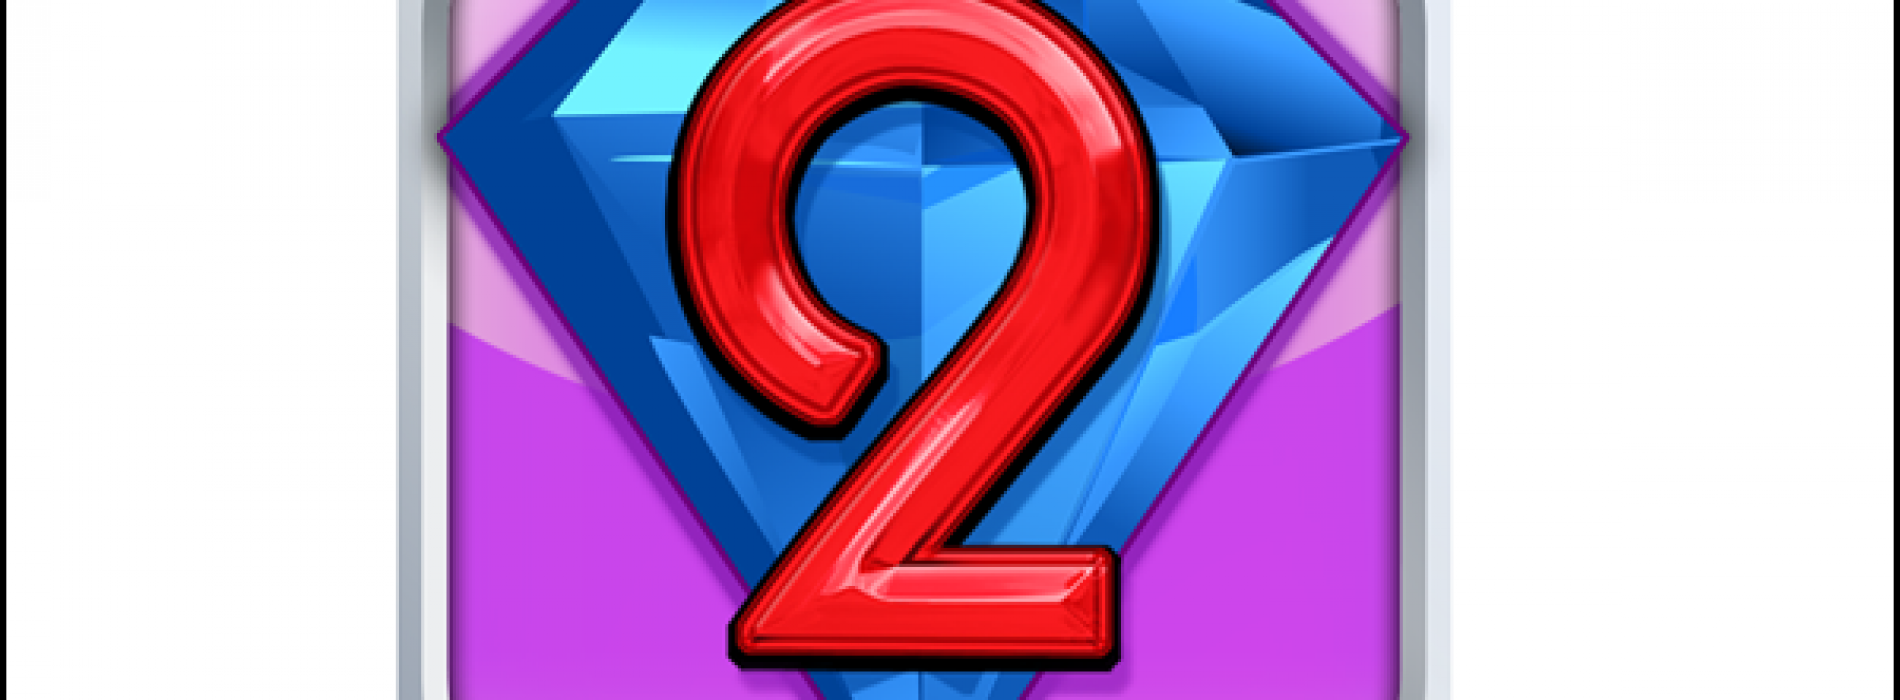 Bejeweled 2 is Amazon's free app of the day (Nov. 16)